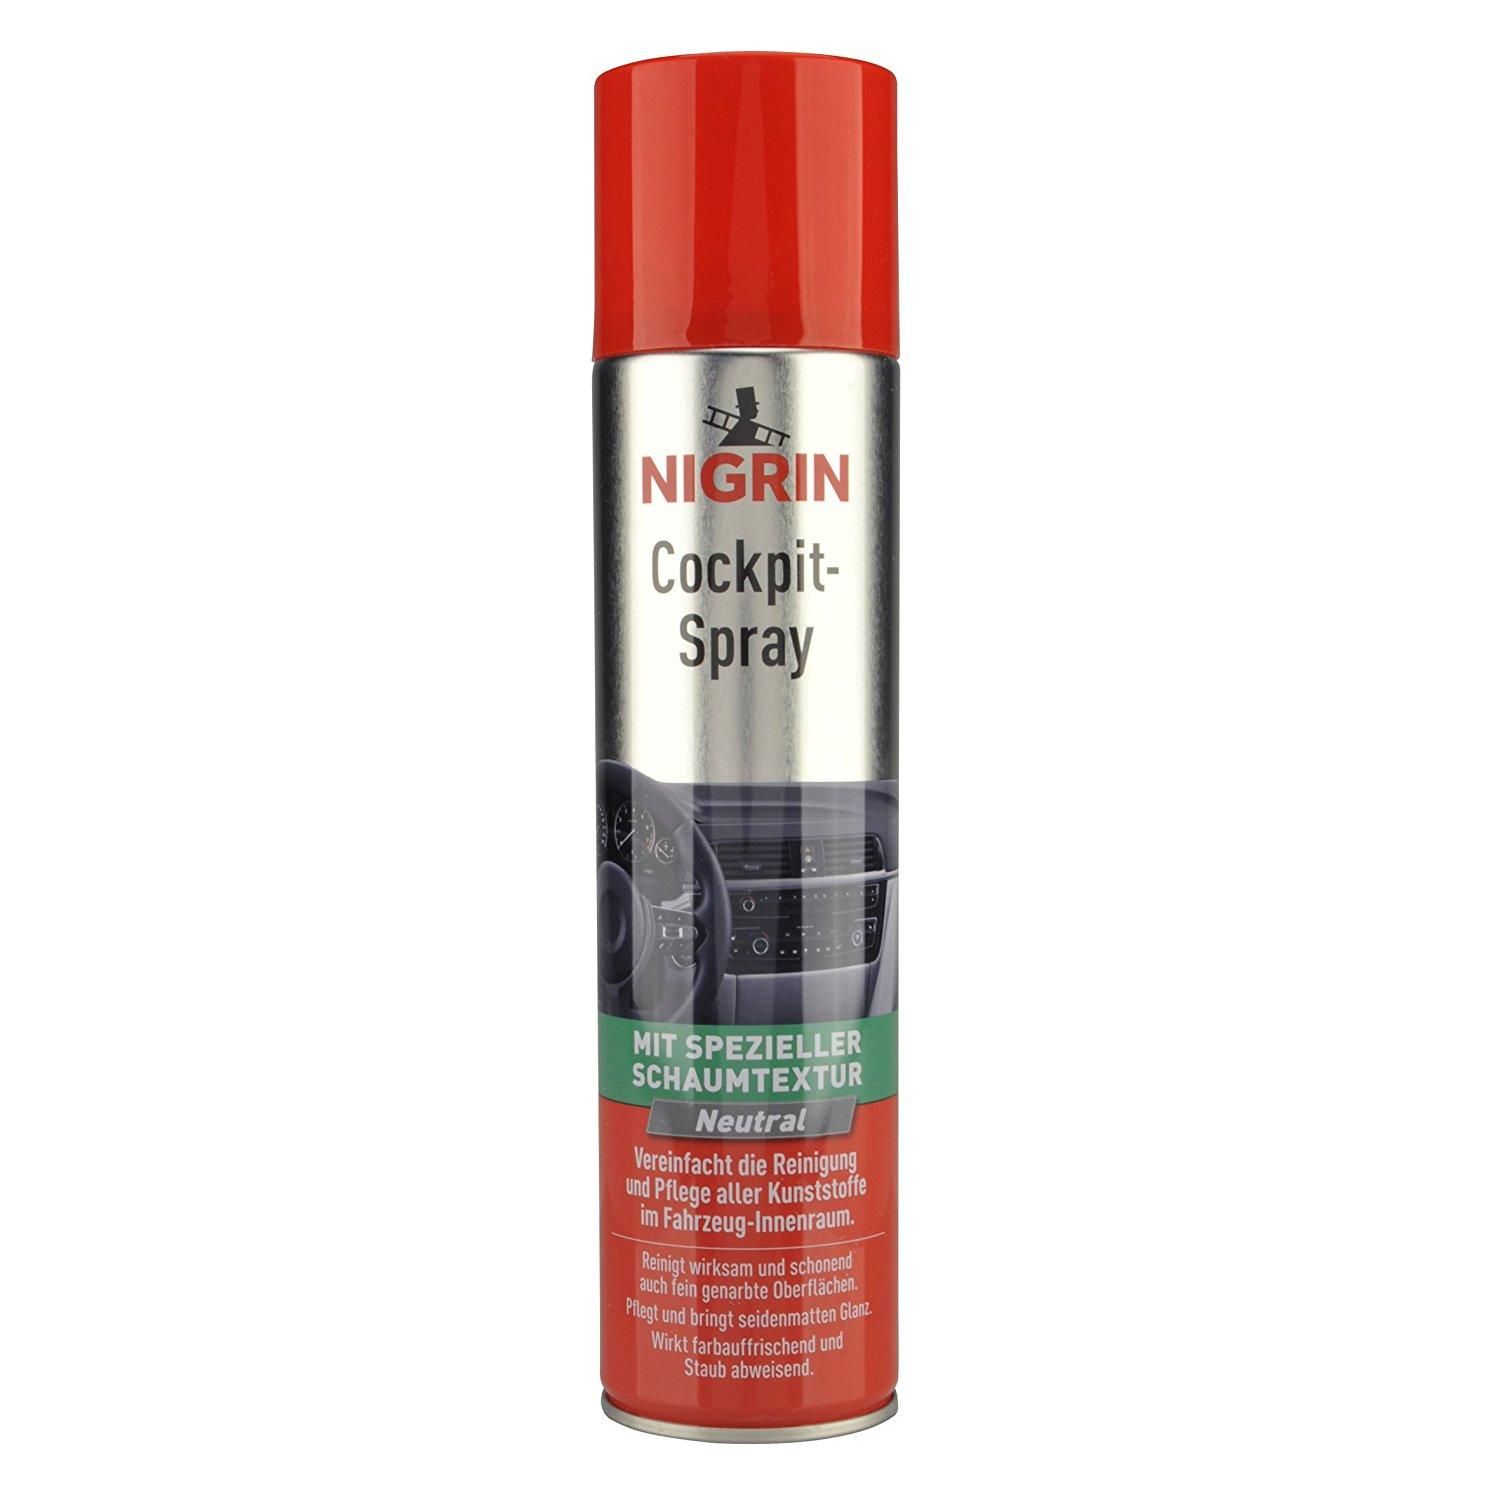 NIGRIN Cockpit spray neutral 400 ml.